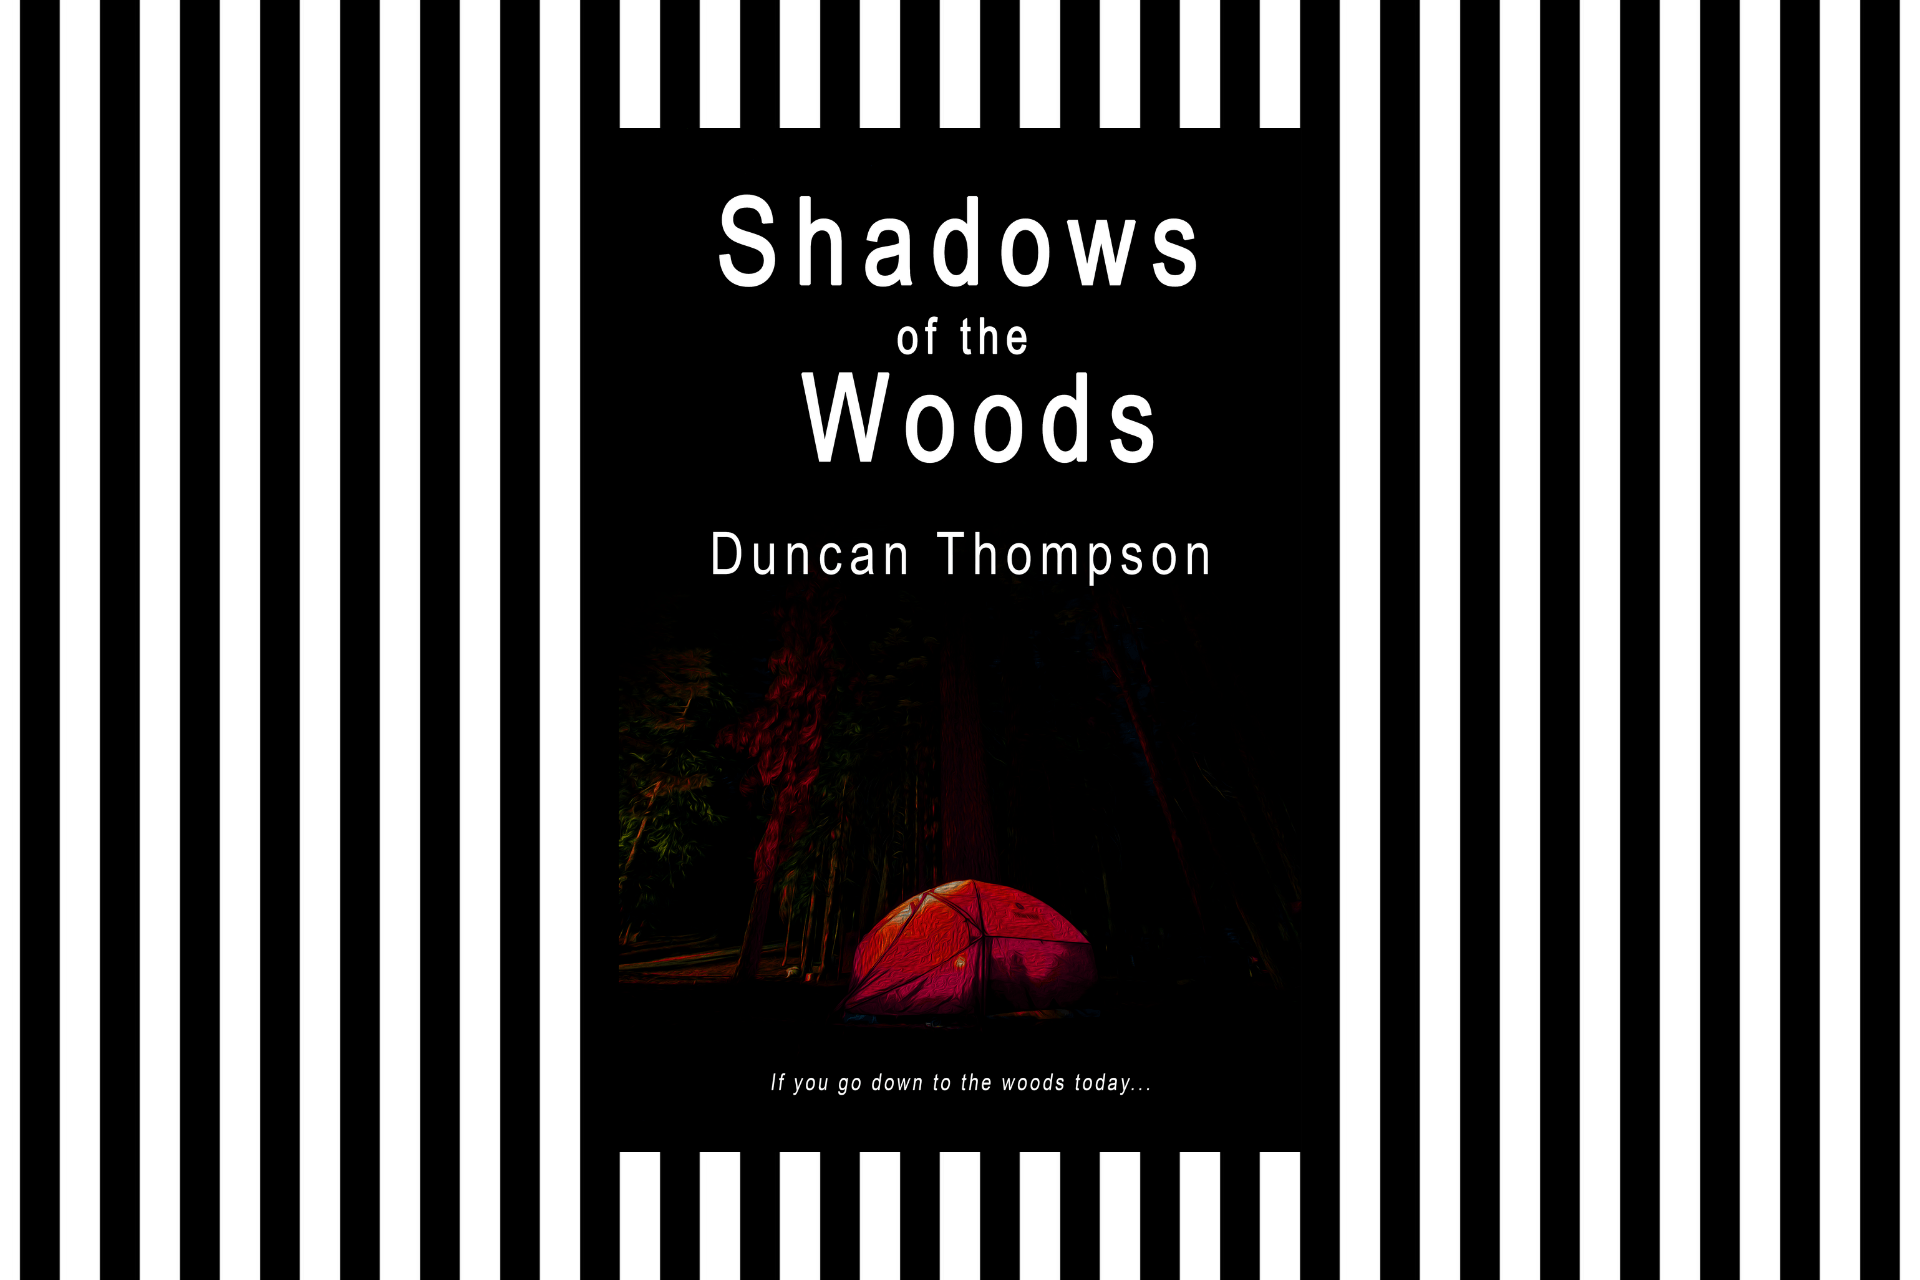 The cover of Shadows of the Woods by Duncan Thompson